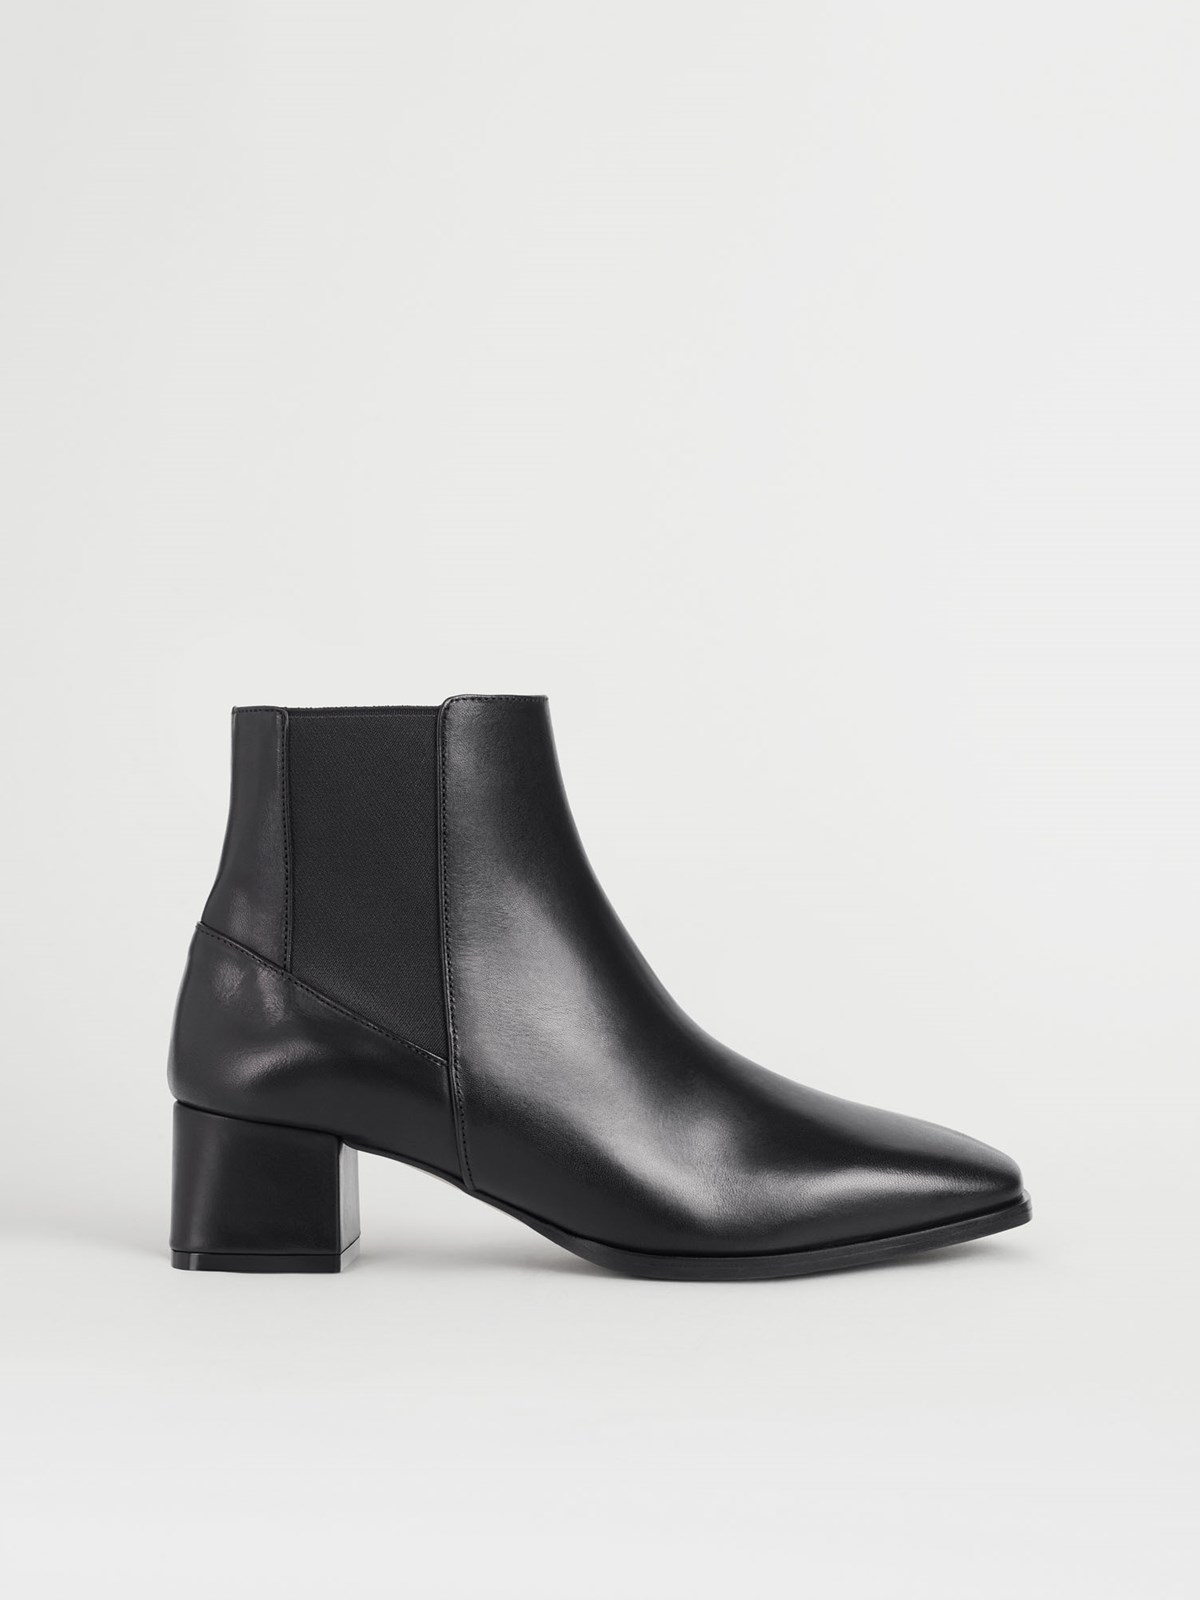 Cicoria Black Ankle boots